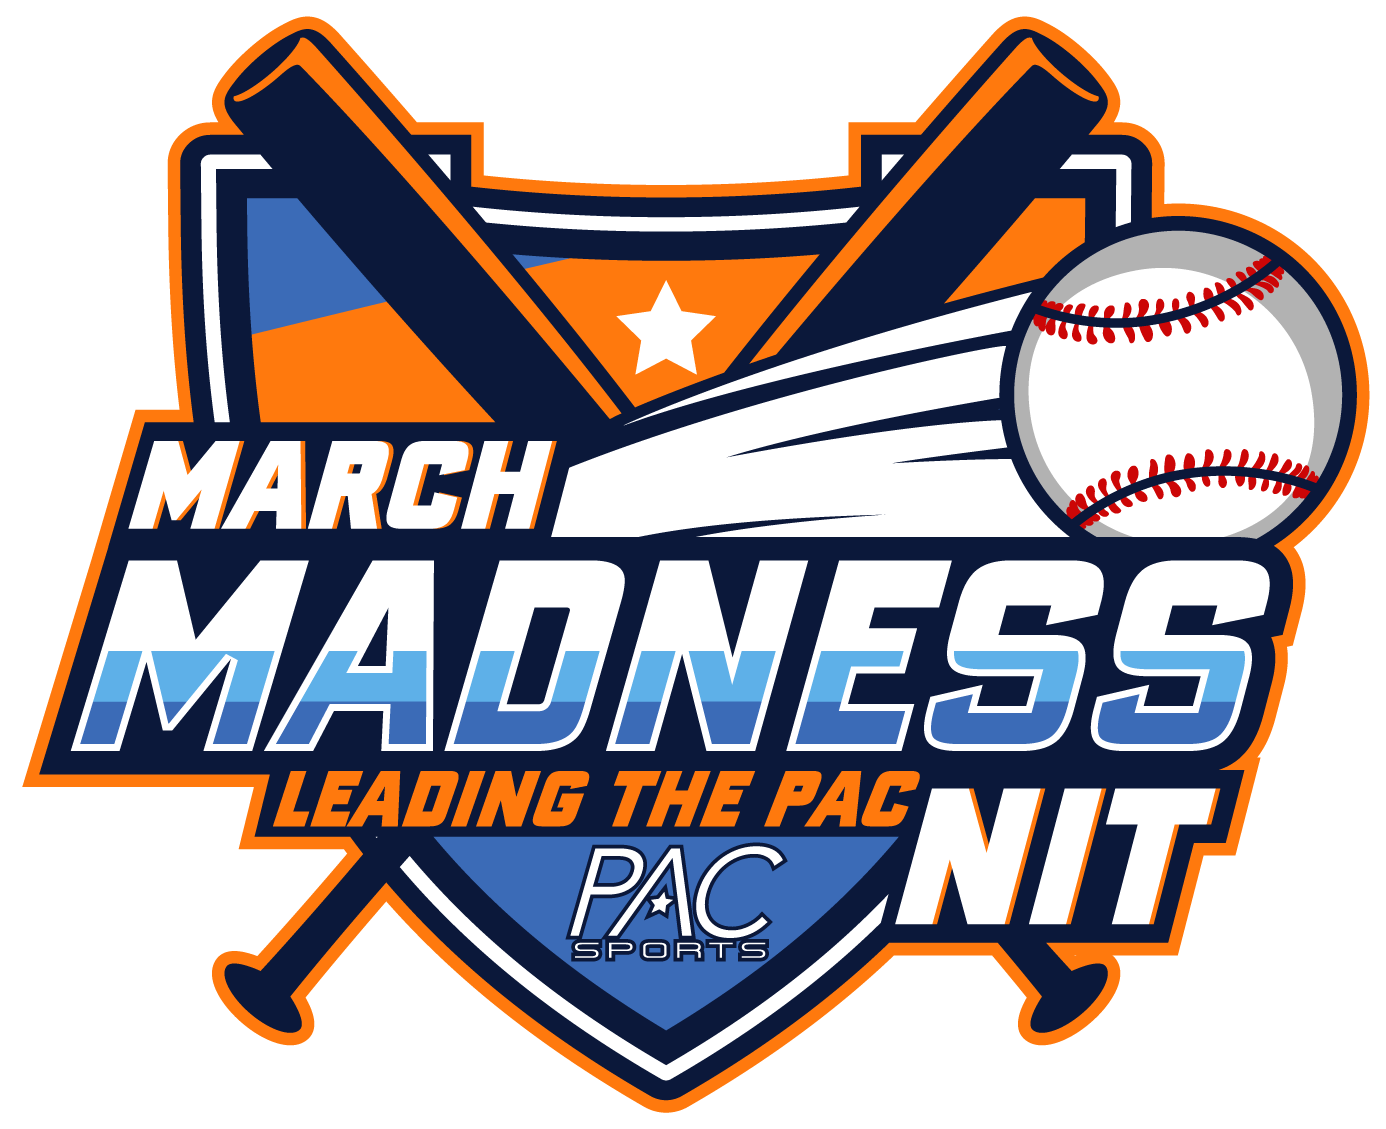 March_Madness_NIT2n.png